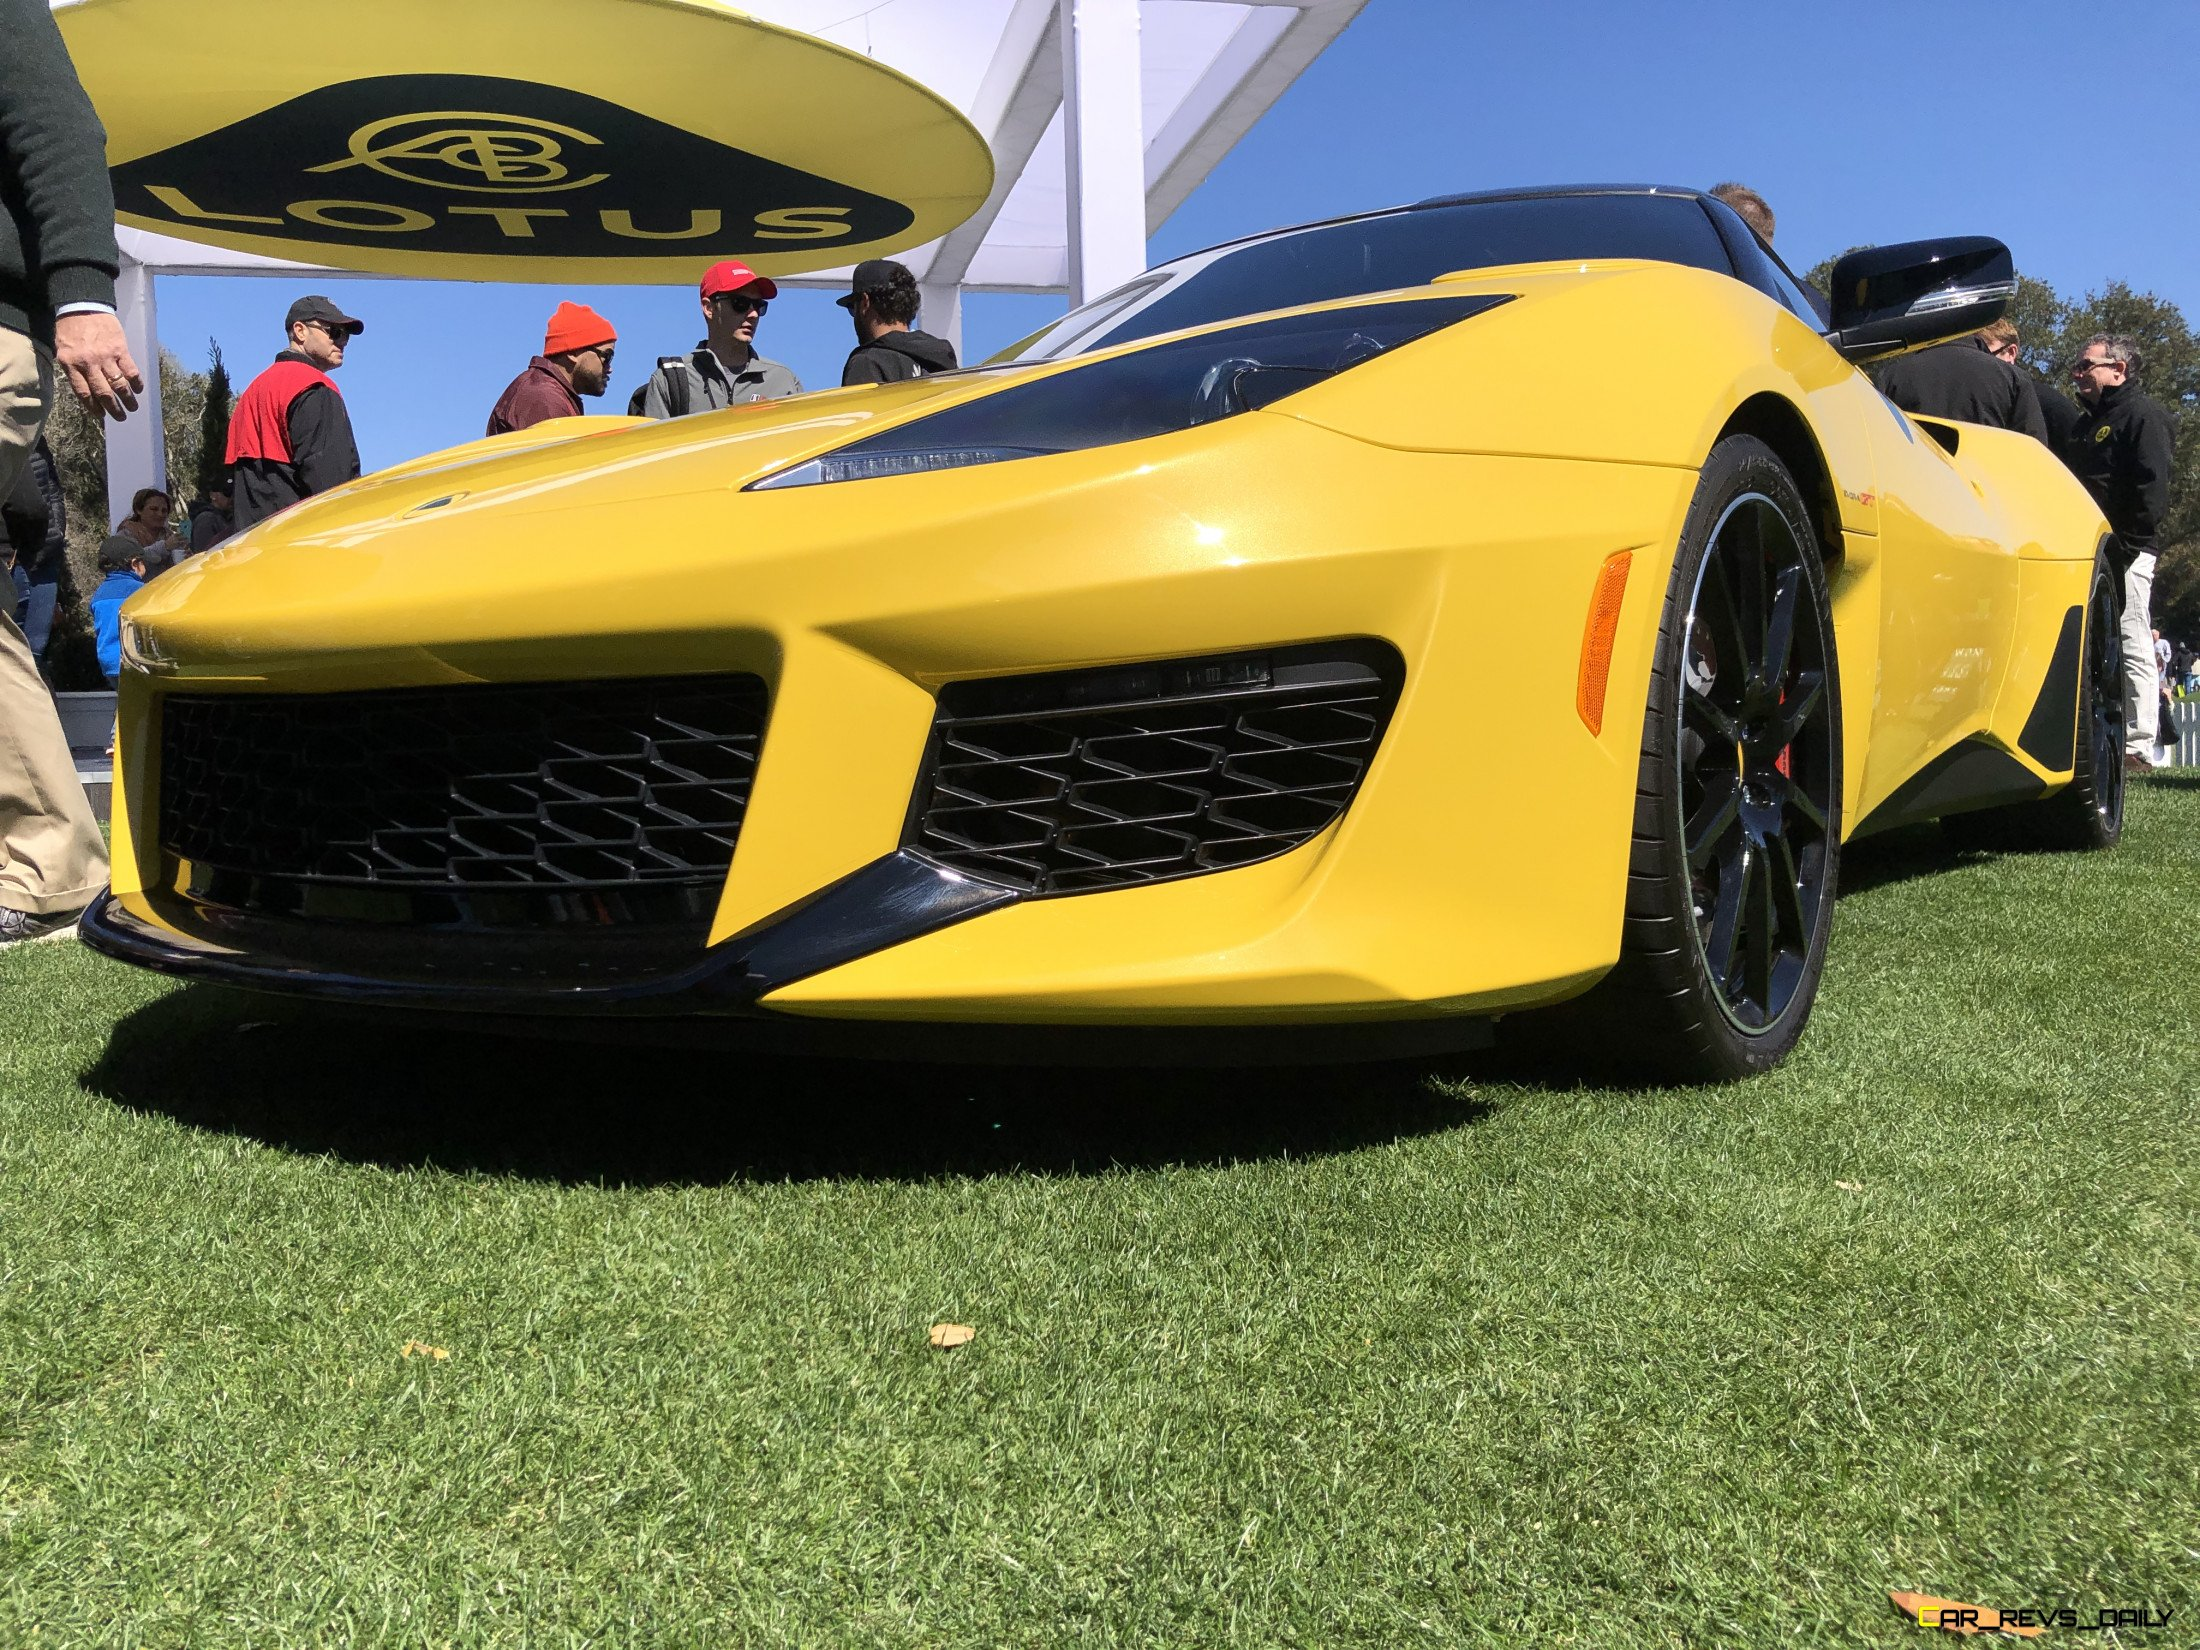 Auto Insider The Best Accessories To Add To Your New Sportscar Crd Auto Industry Insiders Car Revs Daily Com